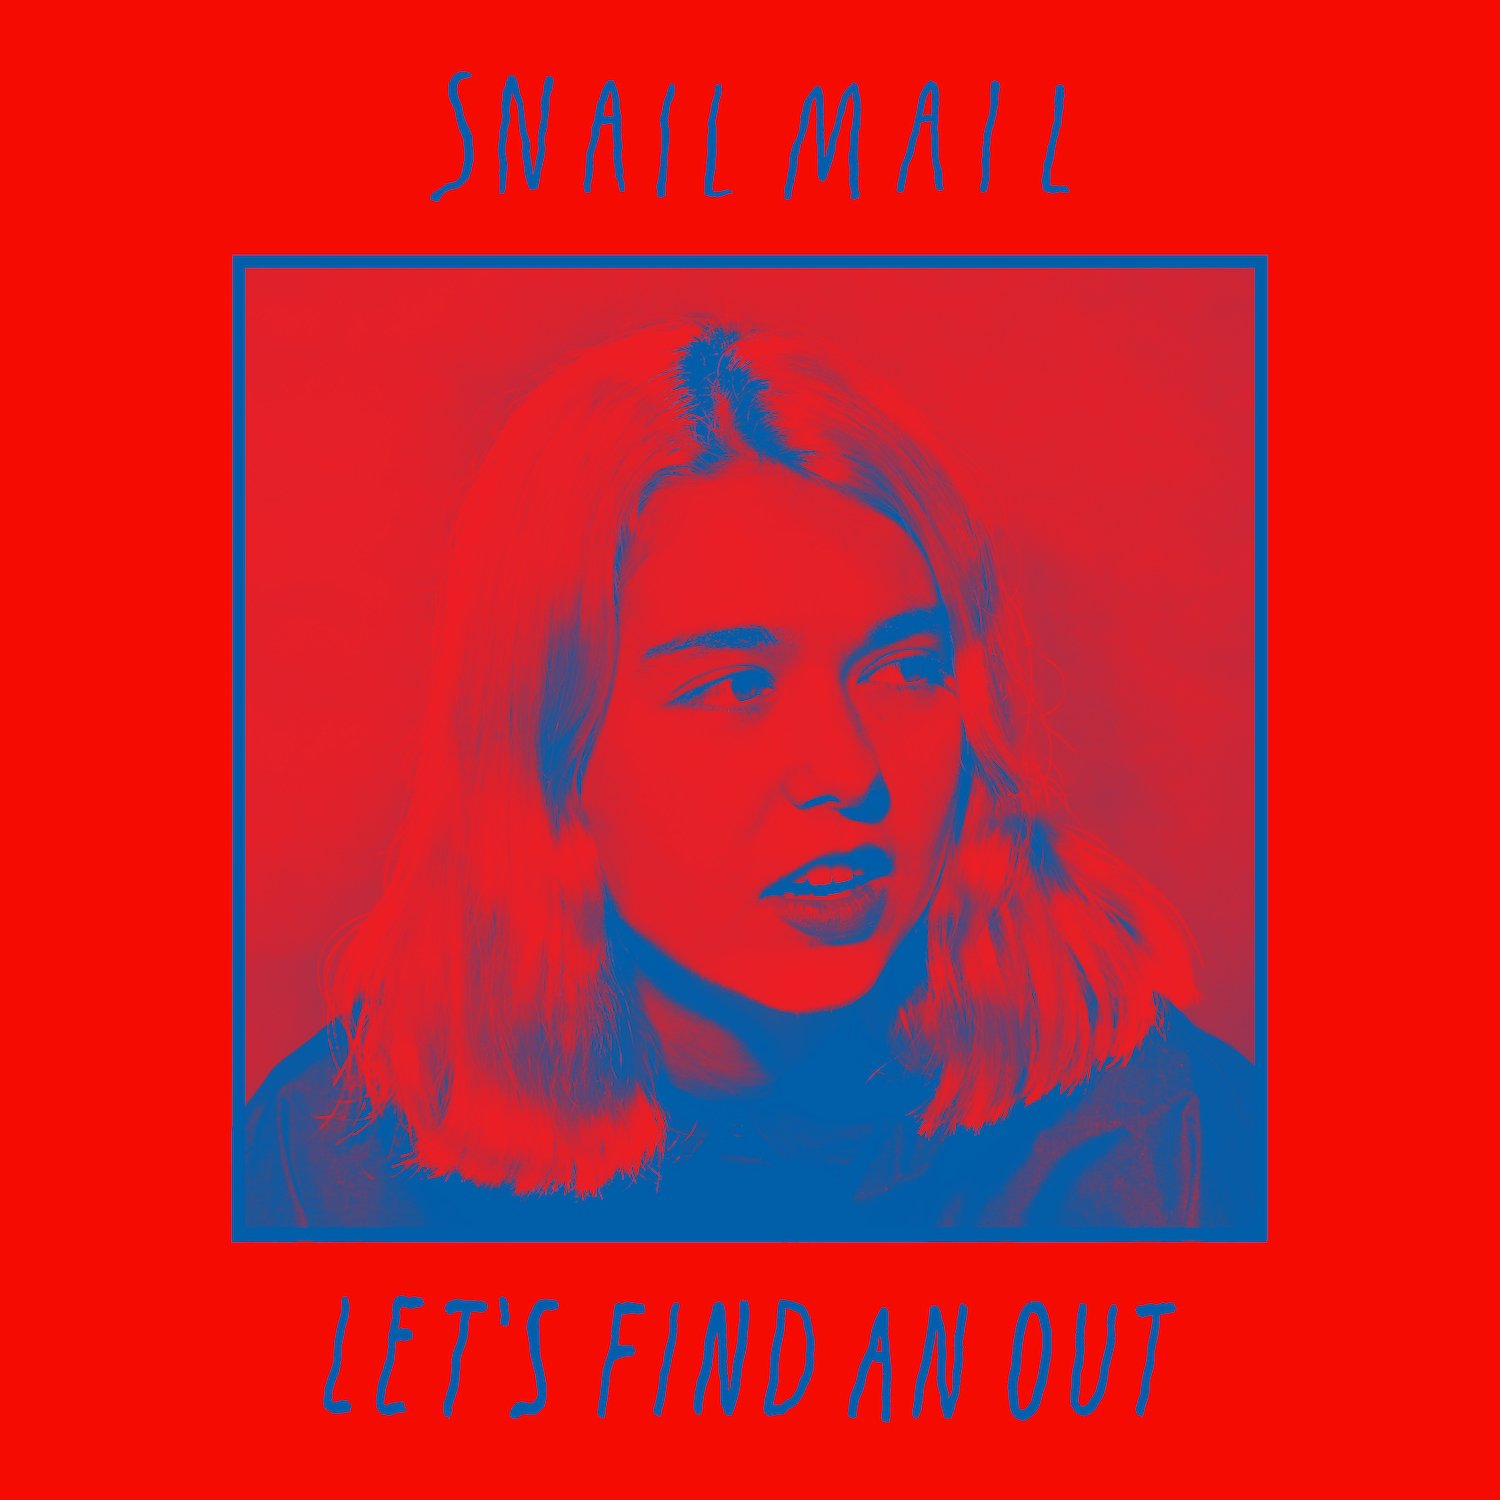 Start your Wednesday with @SnailMailBand's gorgeous new song 'Let's Find An Out' https://t.co/xIsap307Ls https://t.co/XKr3awicDP